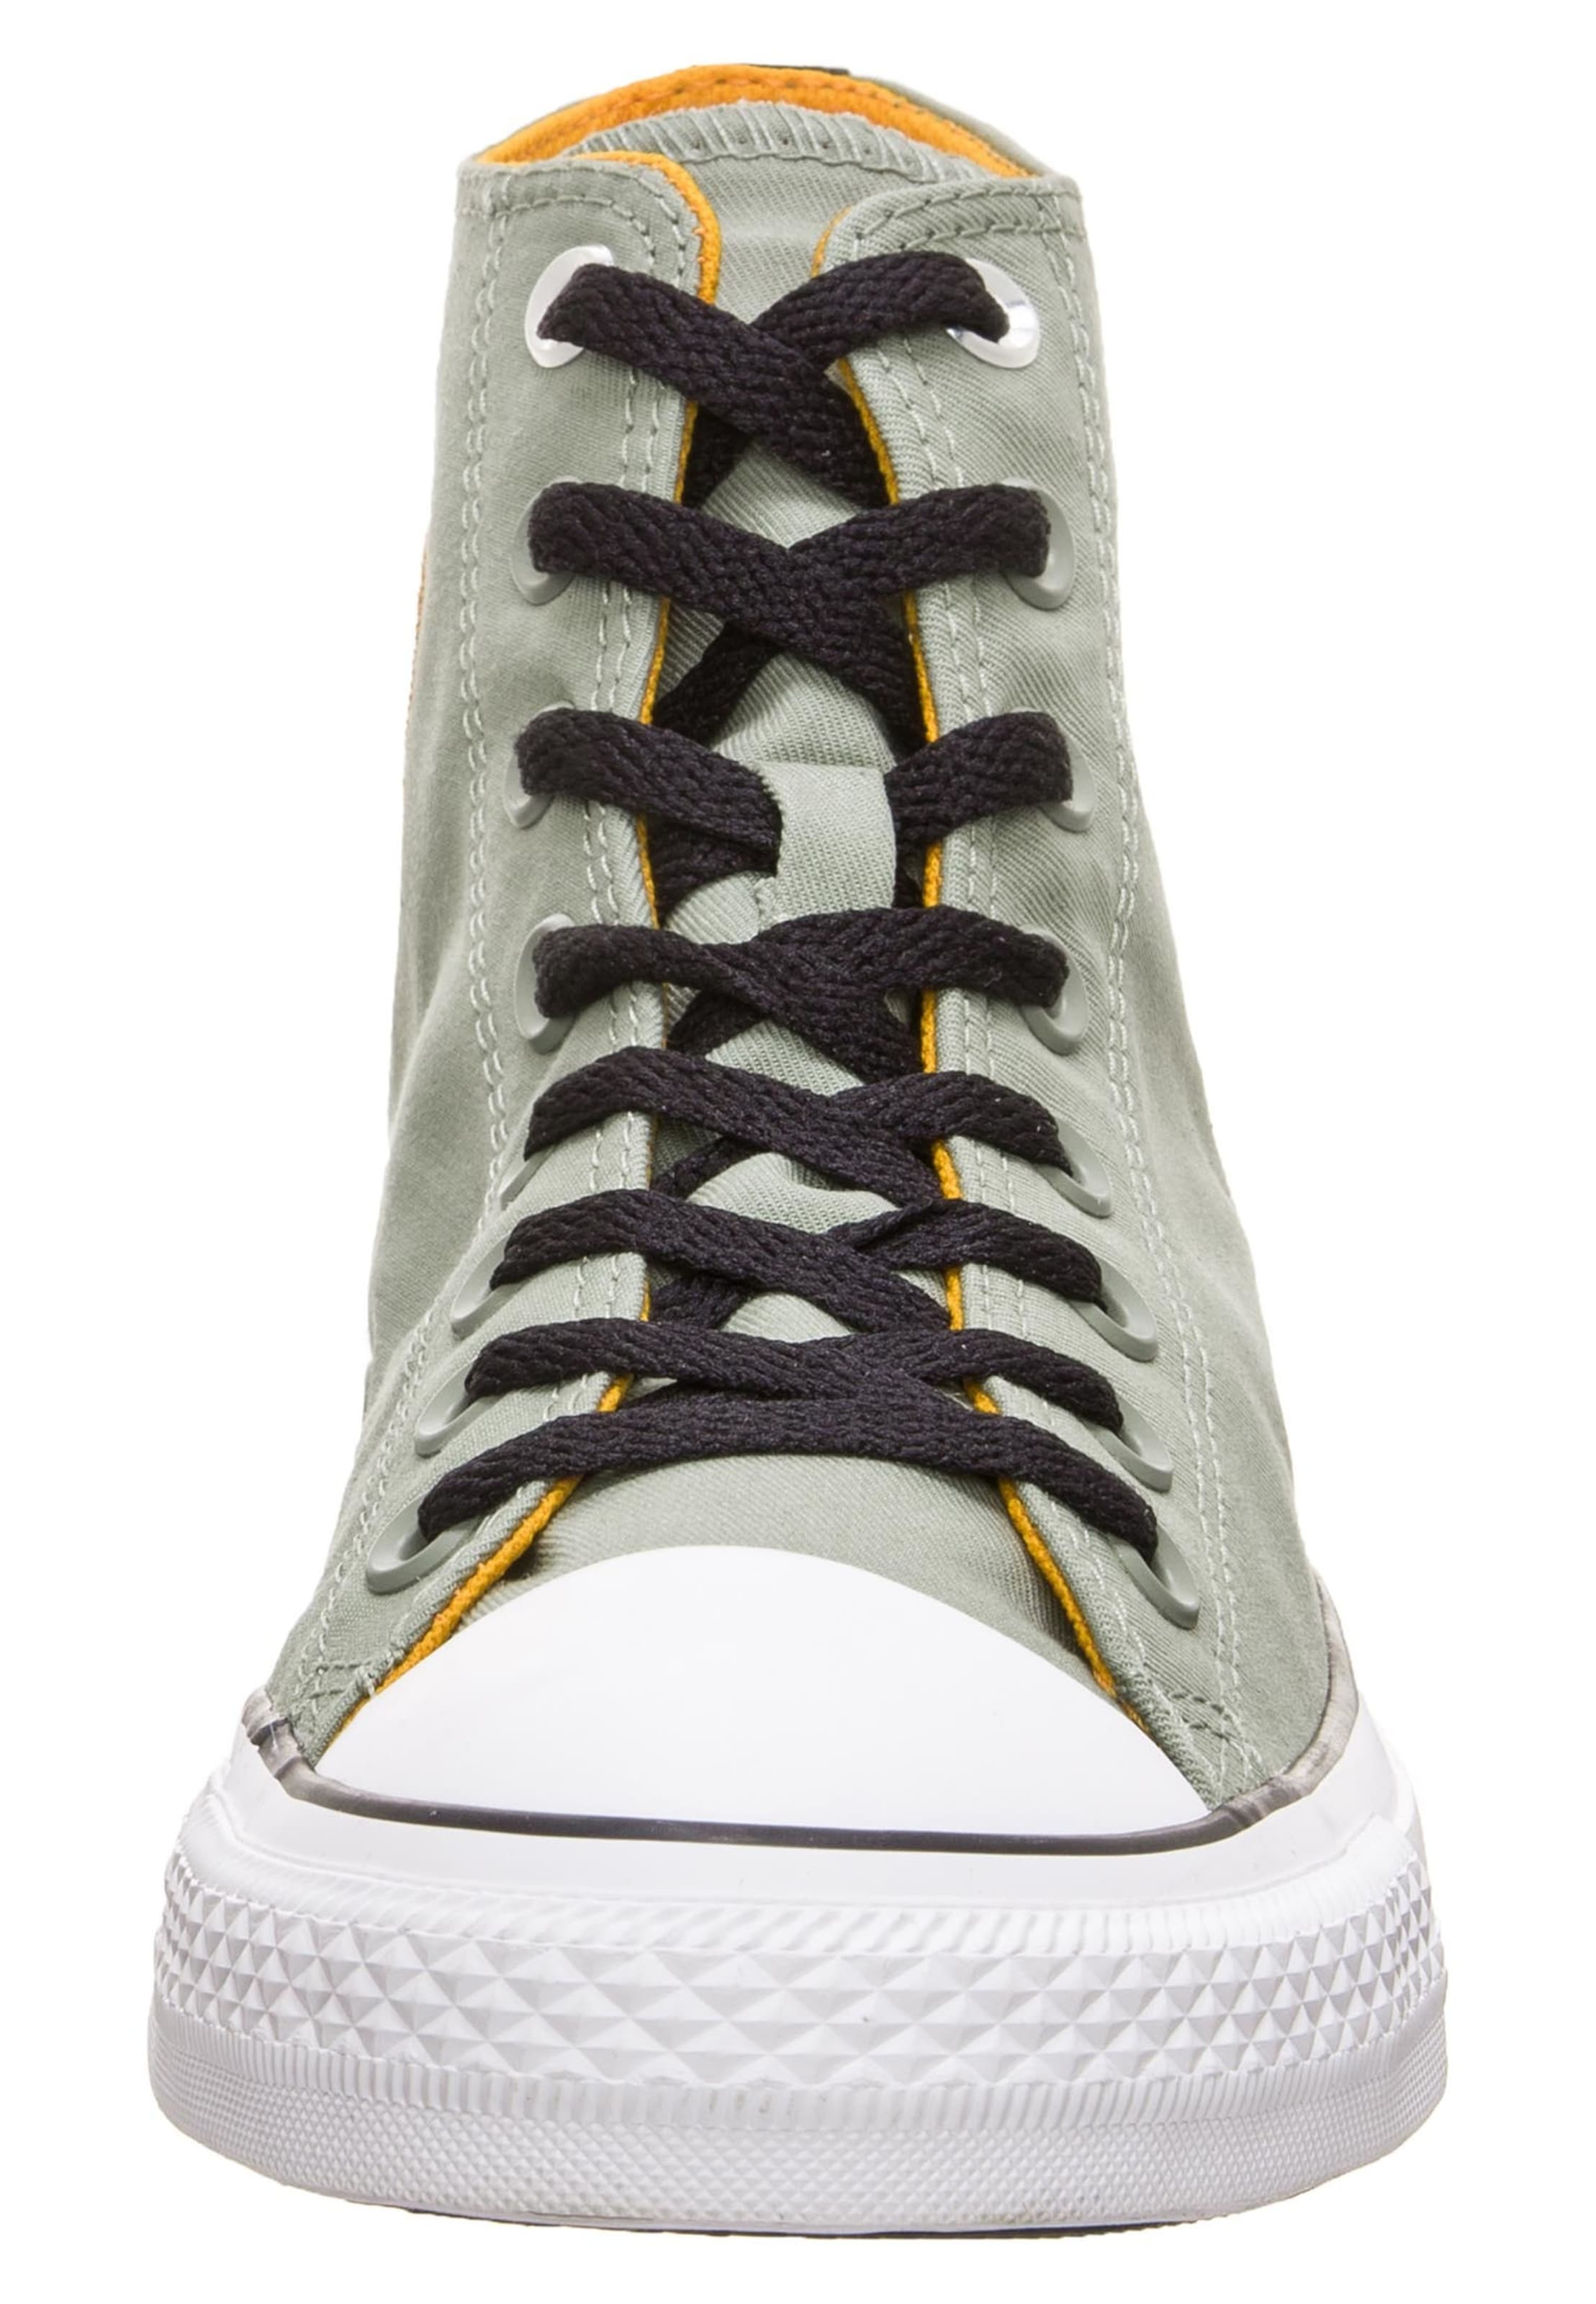 In All Converse Star KhakiOrange Chuck Taylor fgbyY76